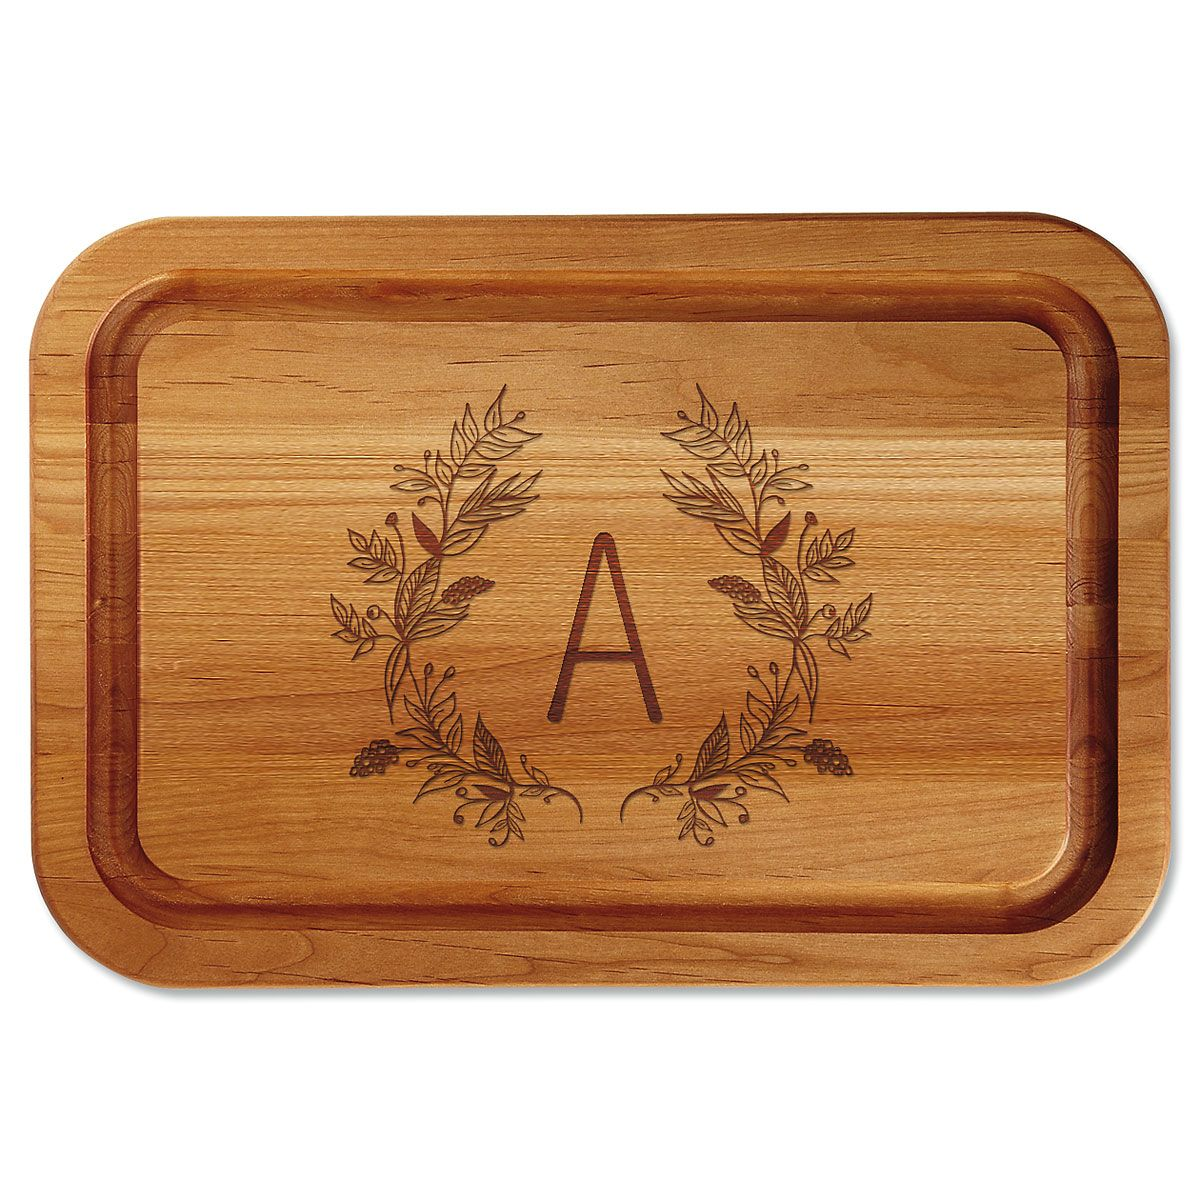 Floral Laurel Initial Engraved Alder Wood Cutting Board